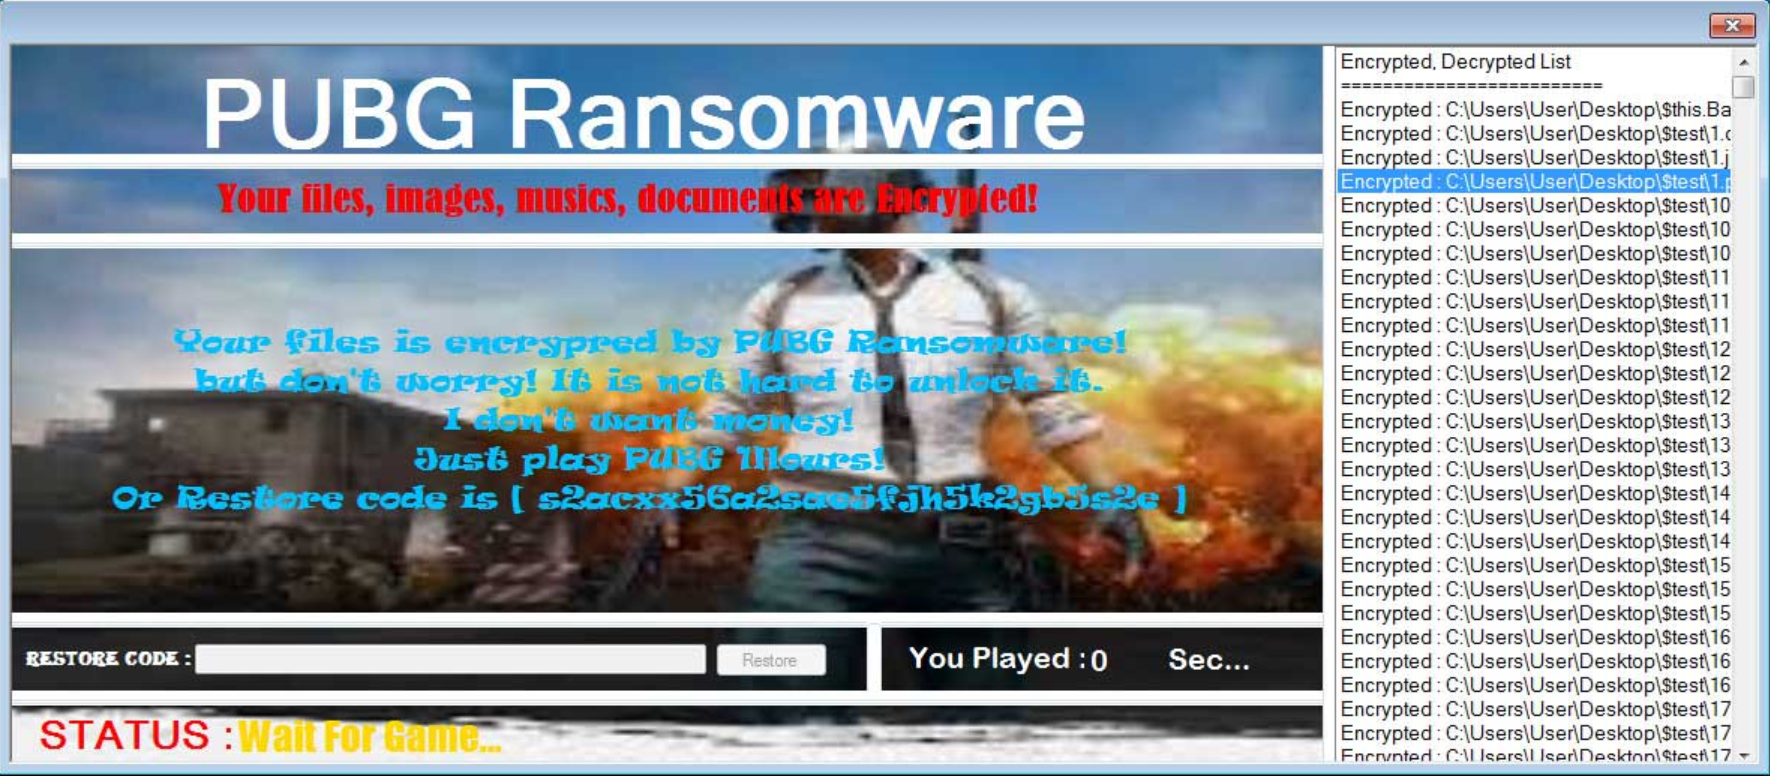 - PUBG ransomware screenshot - Play not pay is the curious demand after a recent ransomware attack